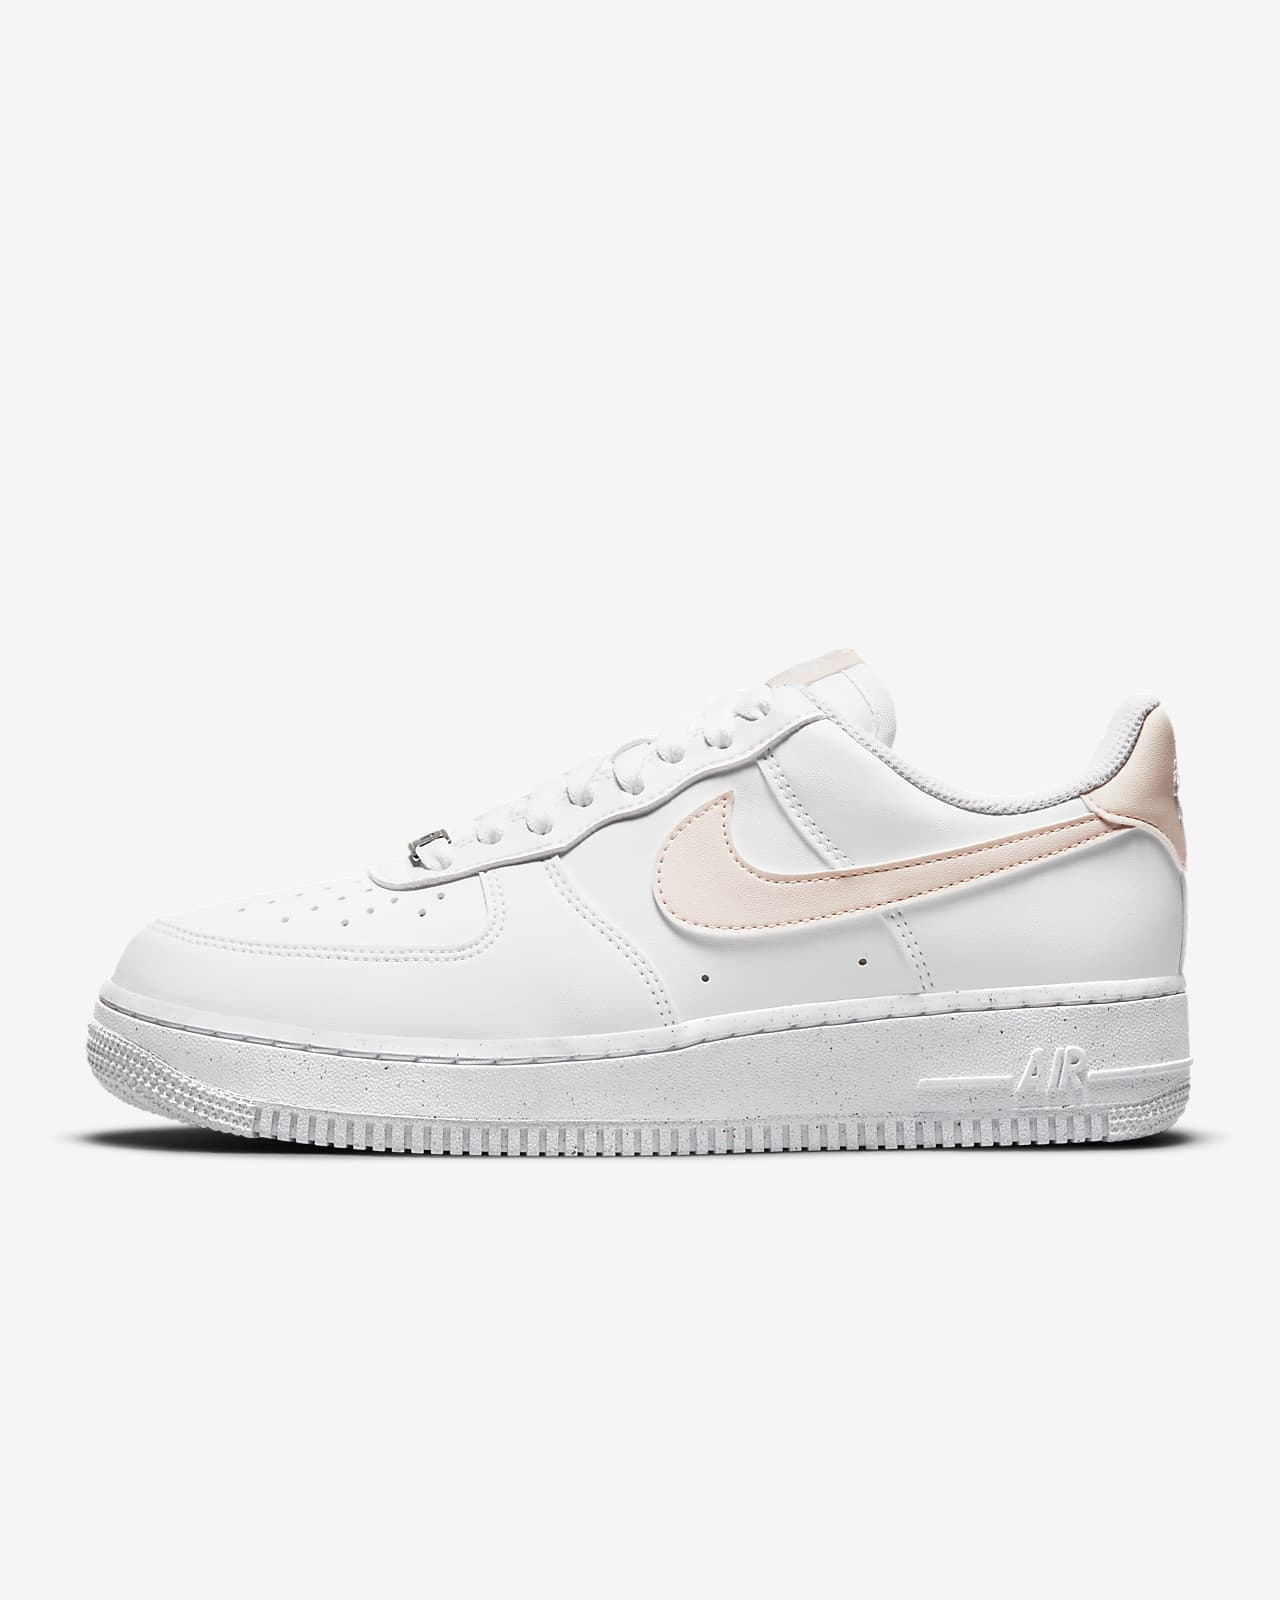 Nike Air Force 1 '07 Next Nature Women's Shoes